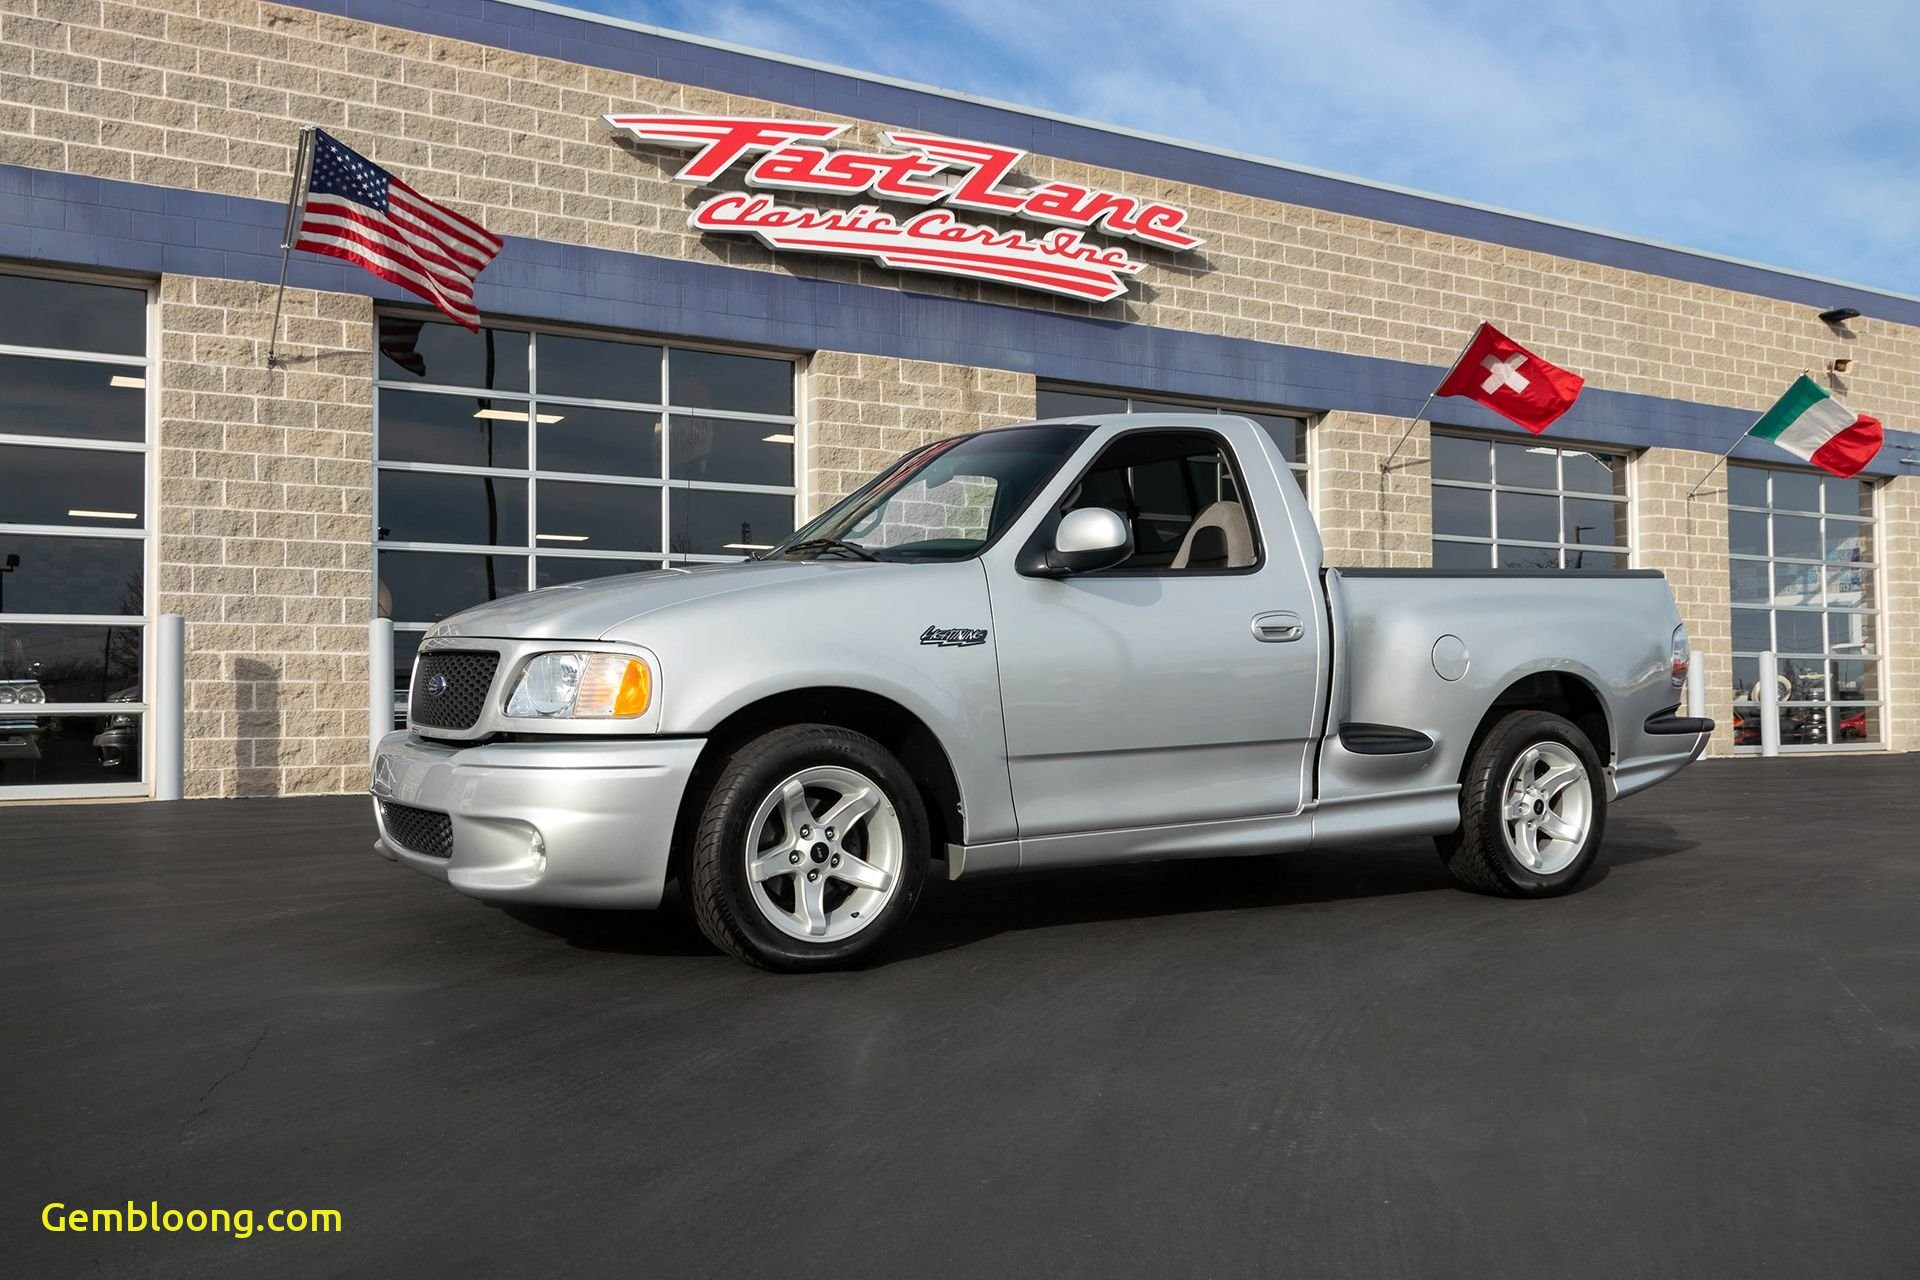 Ford Lightning for Sale New 2000 ford Lightning